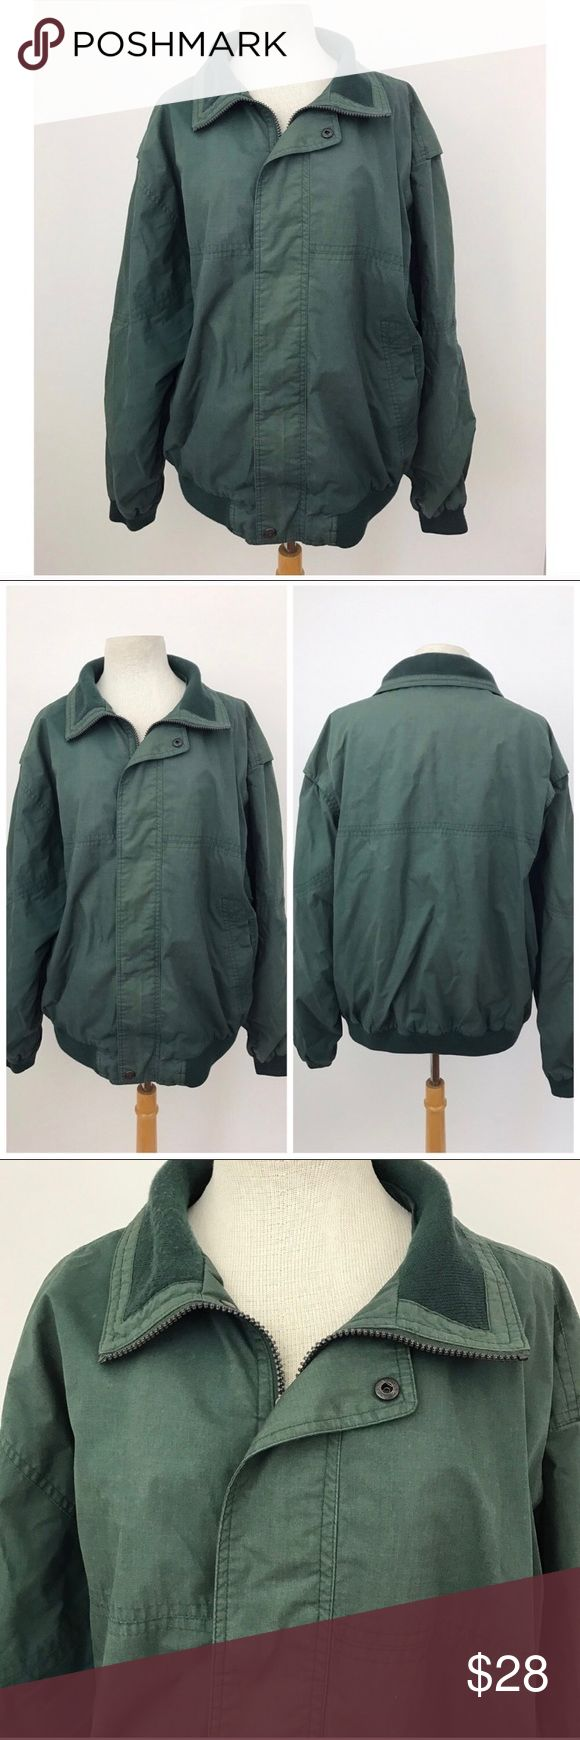 "Vintage Bomber Jacket Faded Green Great vintage bomber jacket ! Zip and button up. Lots of fading, but otherwise good vintage condition.  Size large  Sleeve length 35"" Armpit to armpit 25"" Length 27""  **all of my vintage listings are in good vintage condition unless noted otherwise. good vintage condition means there still may be flaws due to their age. I thoroughly inspect all my listings and I will state any major damage**  Photographs are part of the description, please look over them…"